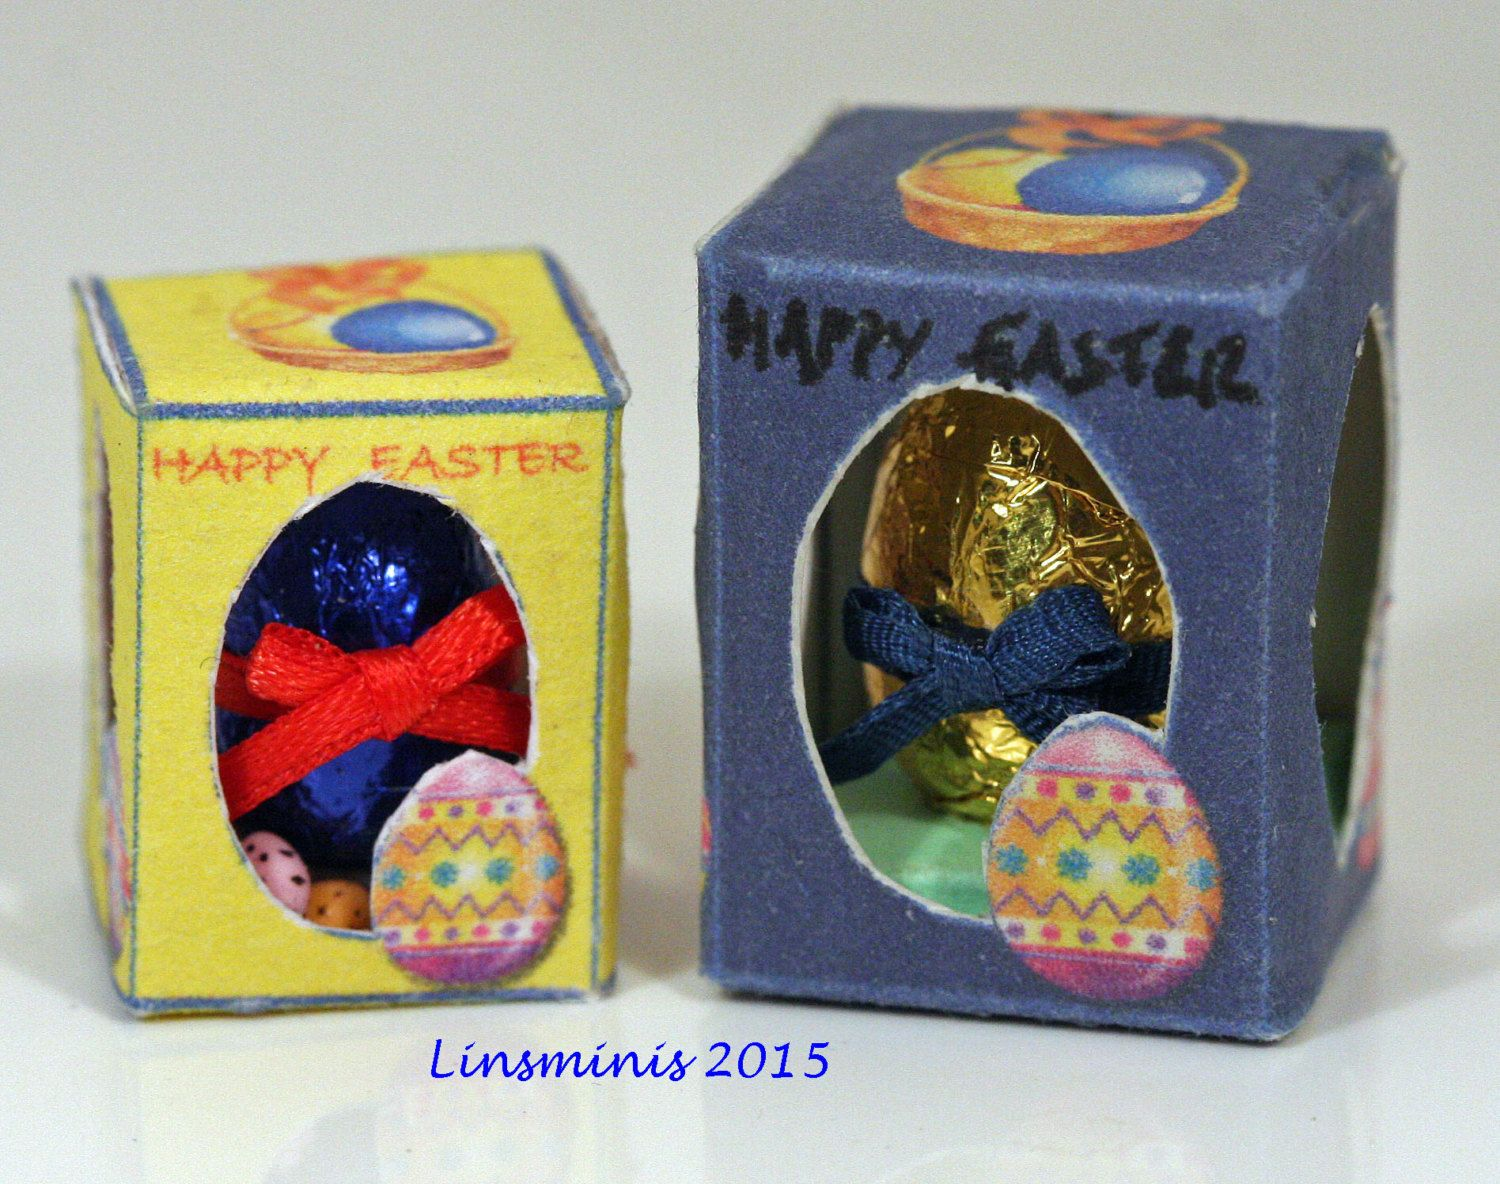 doll house miniature 12th scale boxed Easter eggs by linsminis